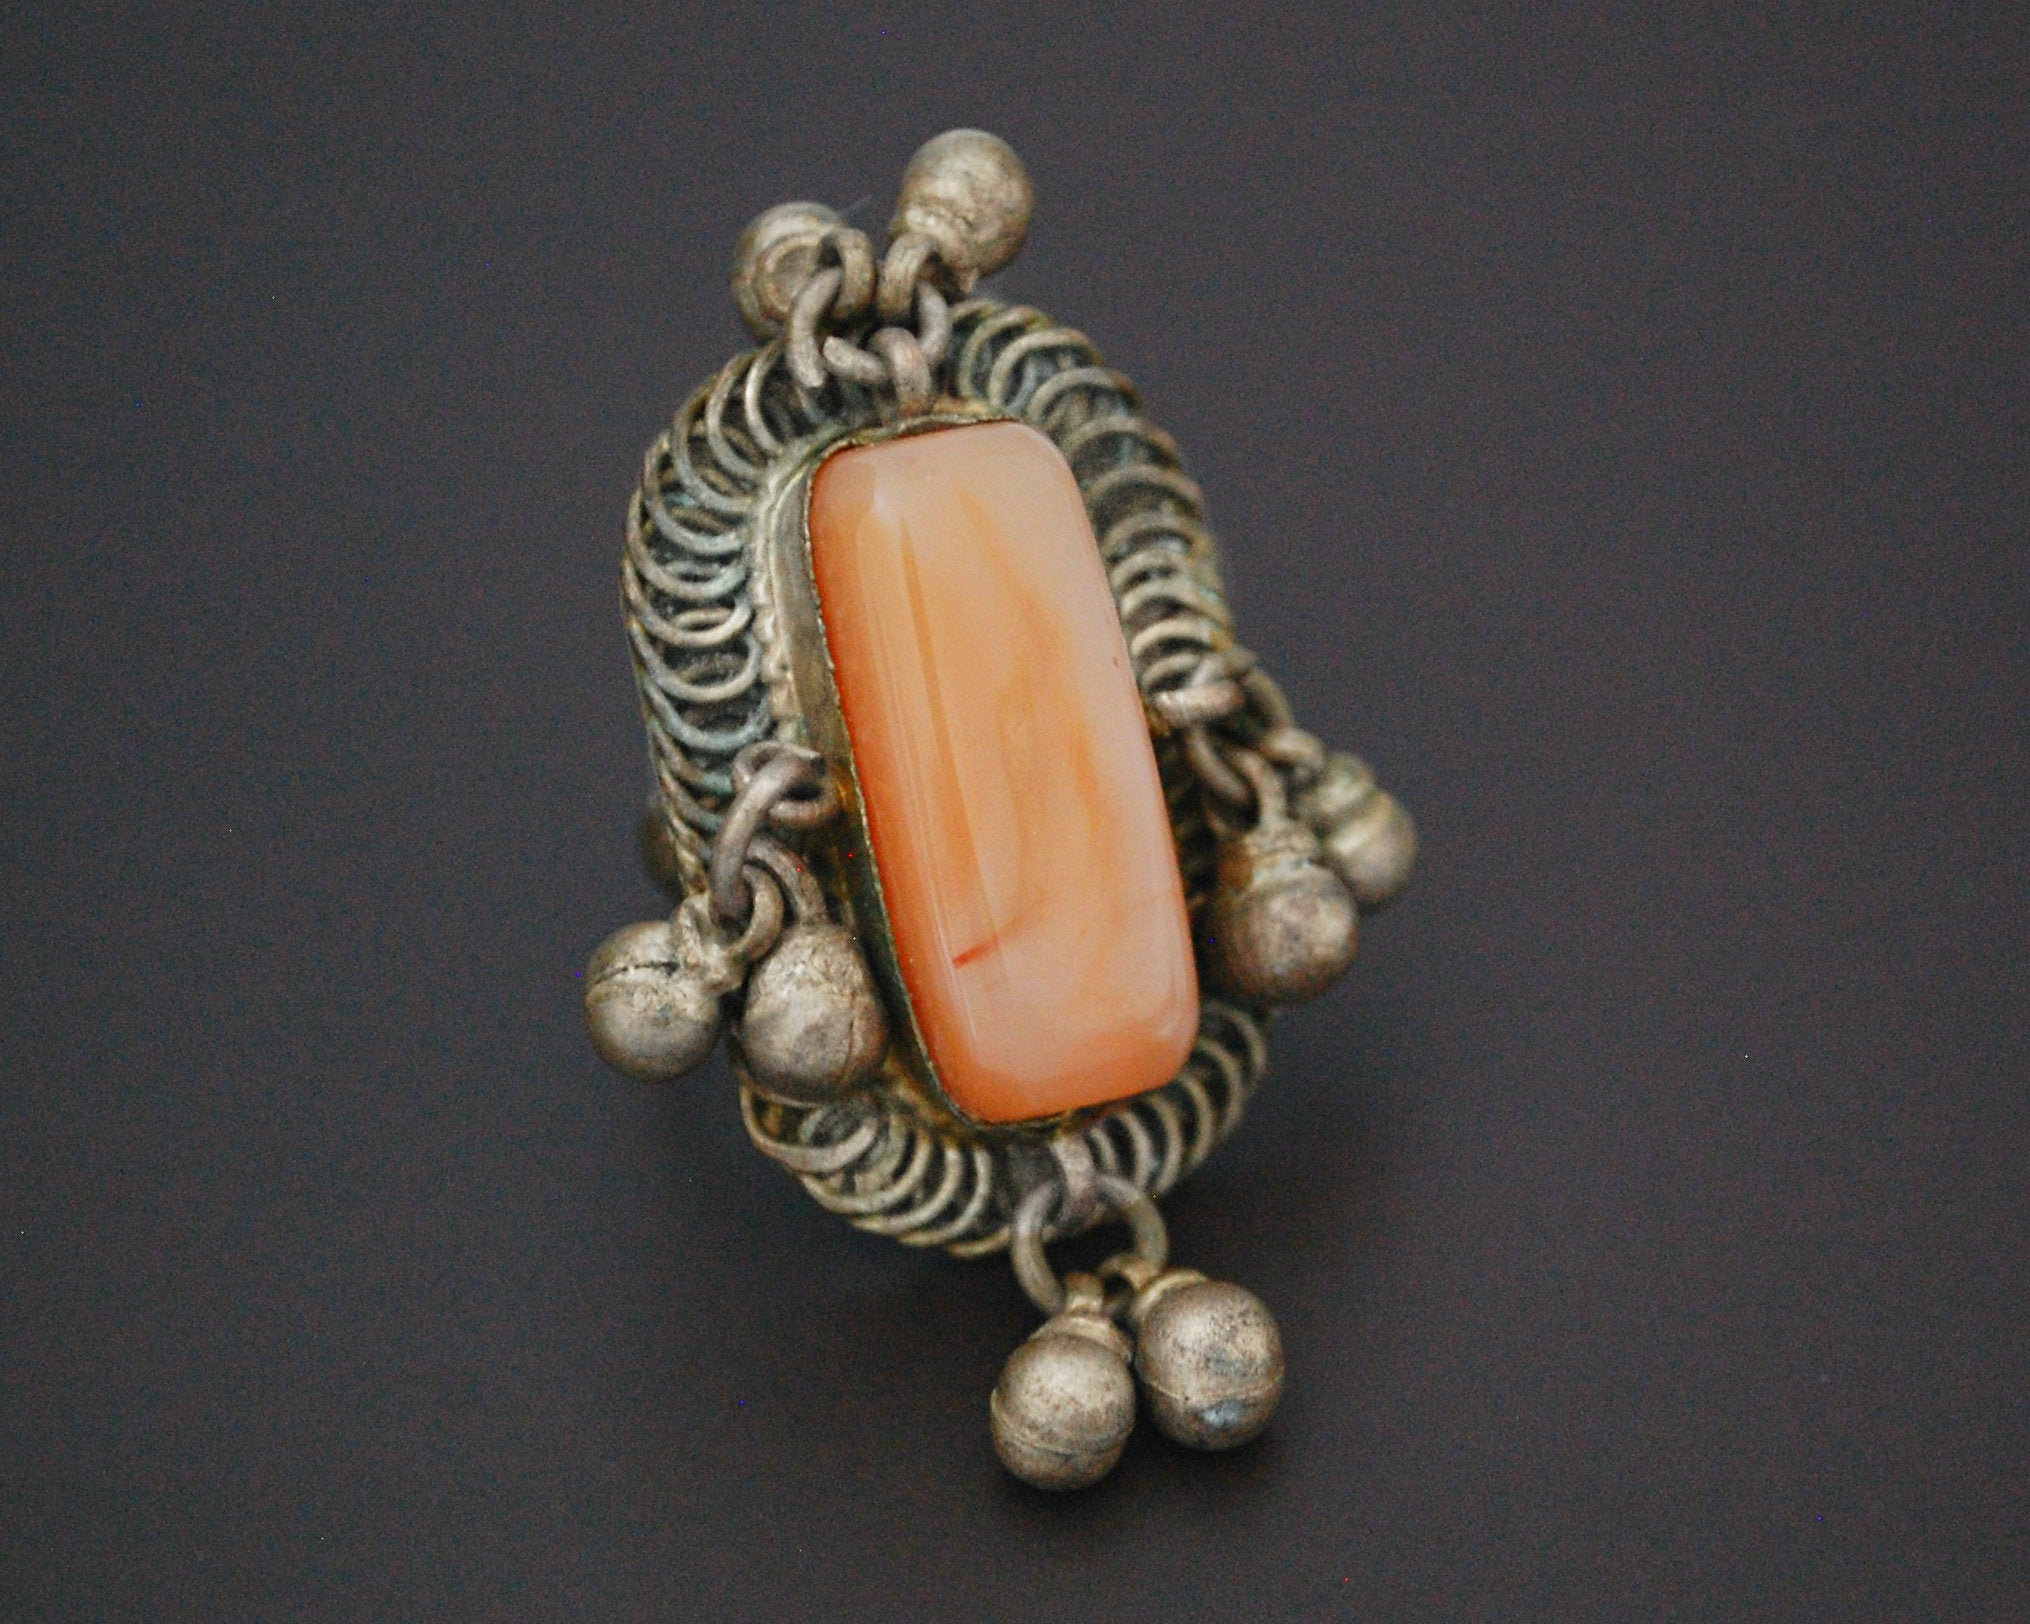 Old Bedouin Agate Ring with Bells - Size 7